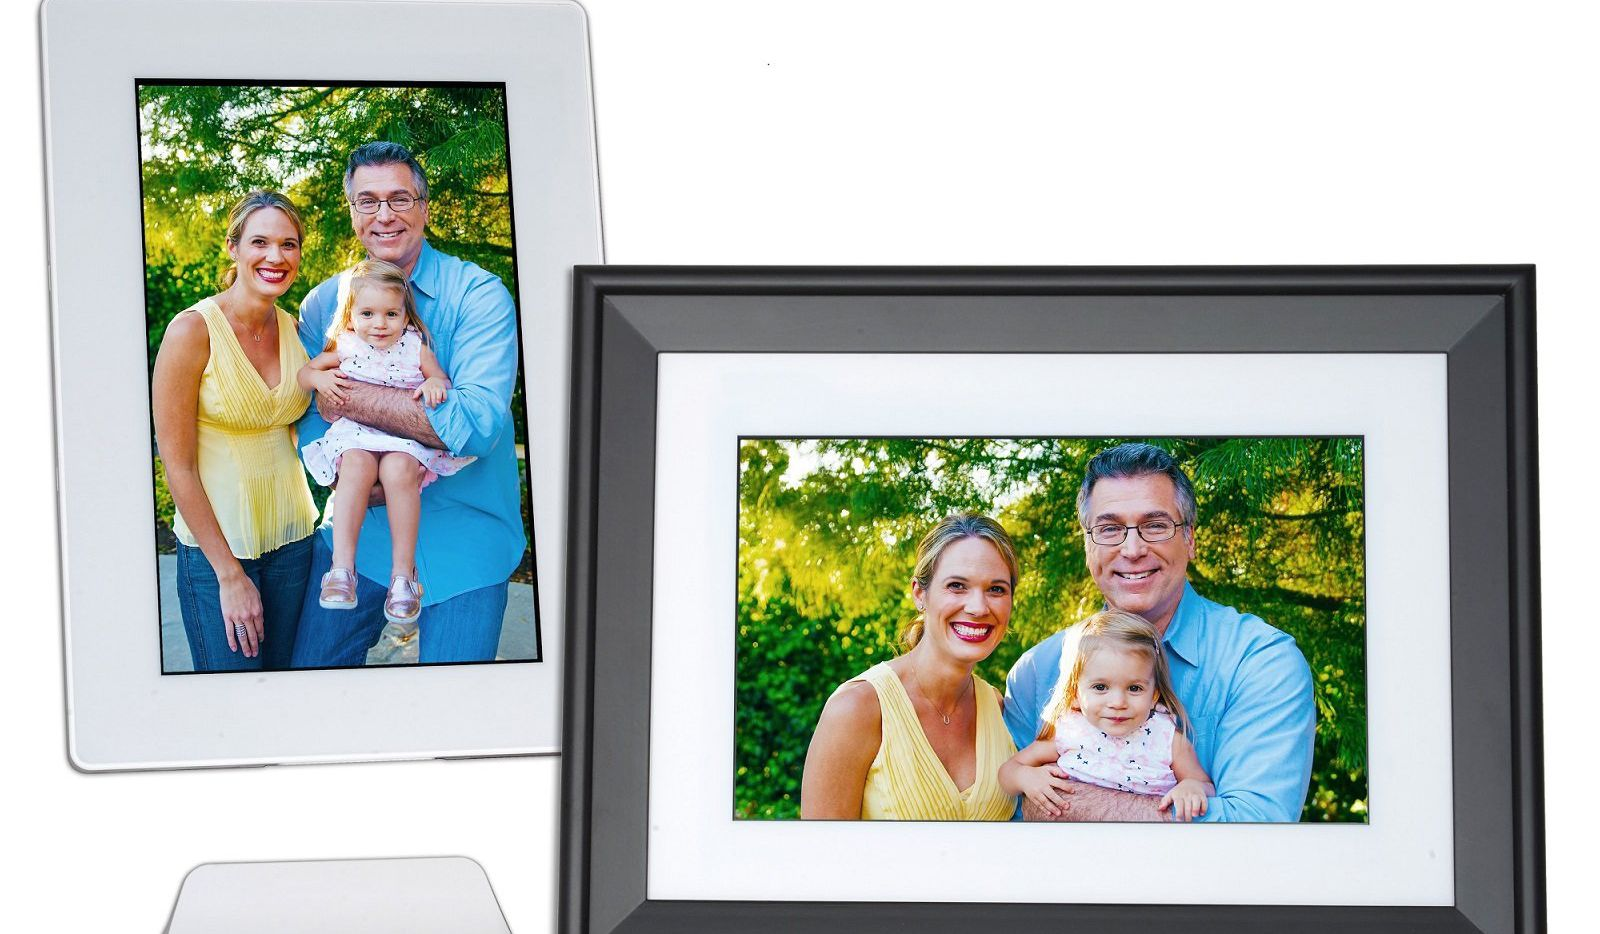 The PhotoSpring 10 Premium Smart Digital Photo Frame is easy to set up.